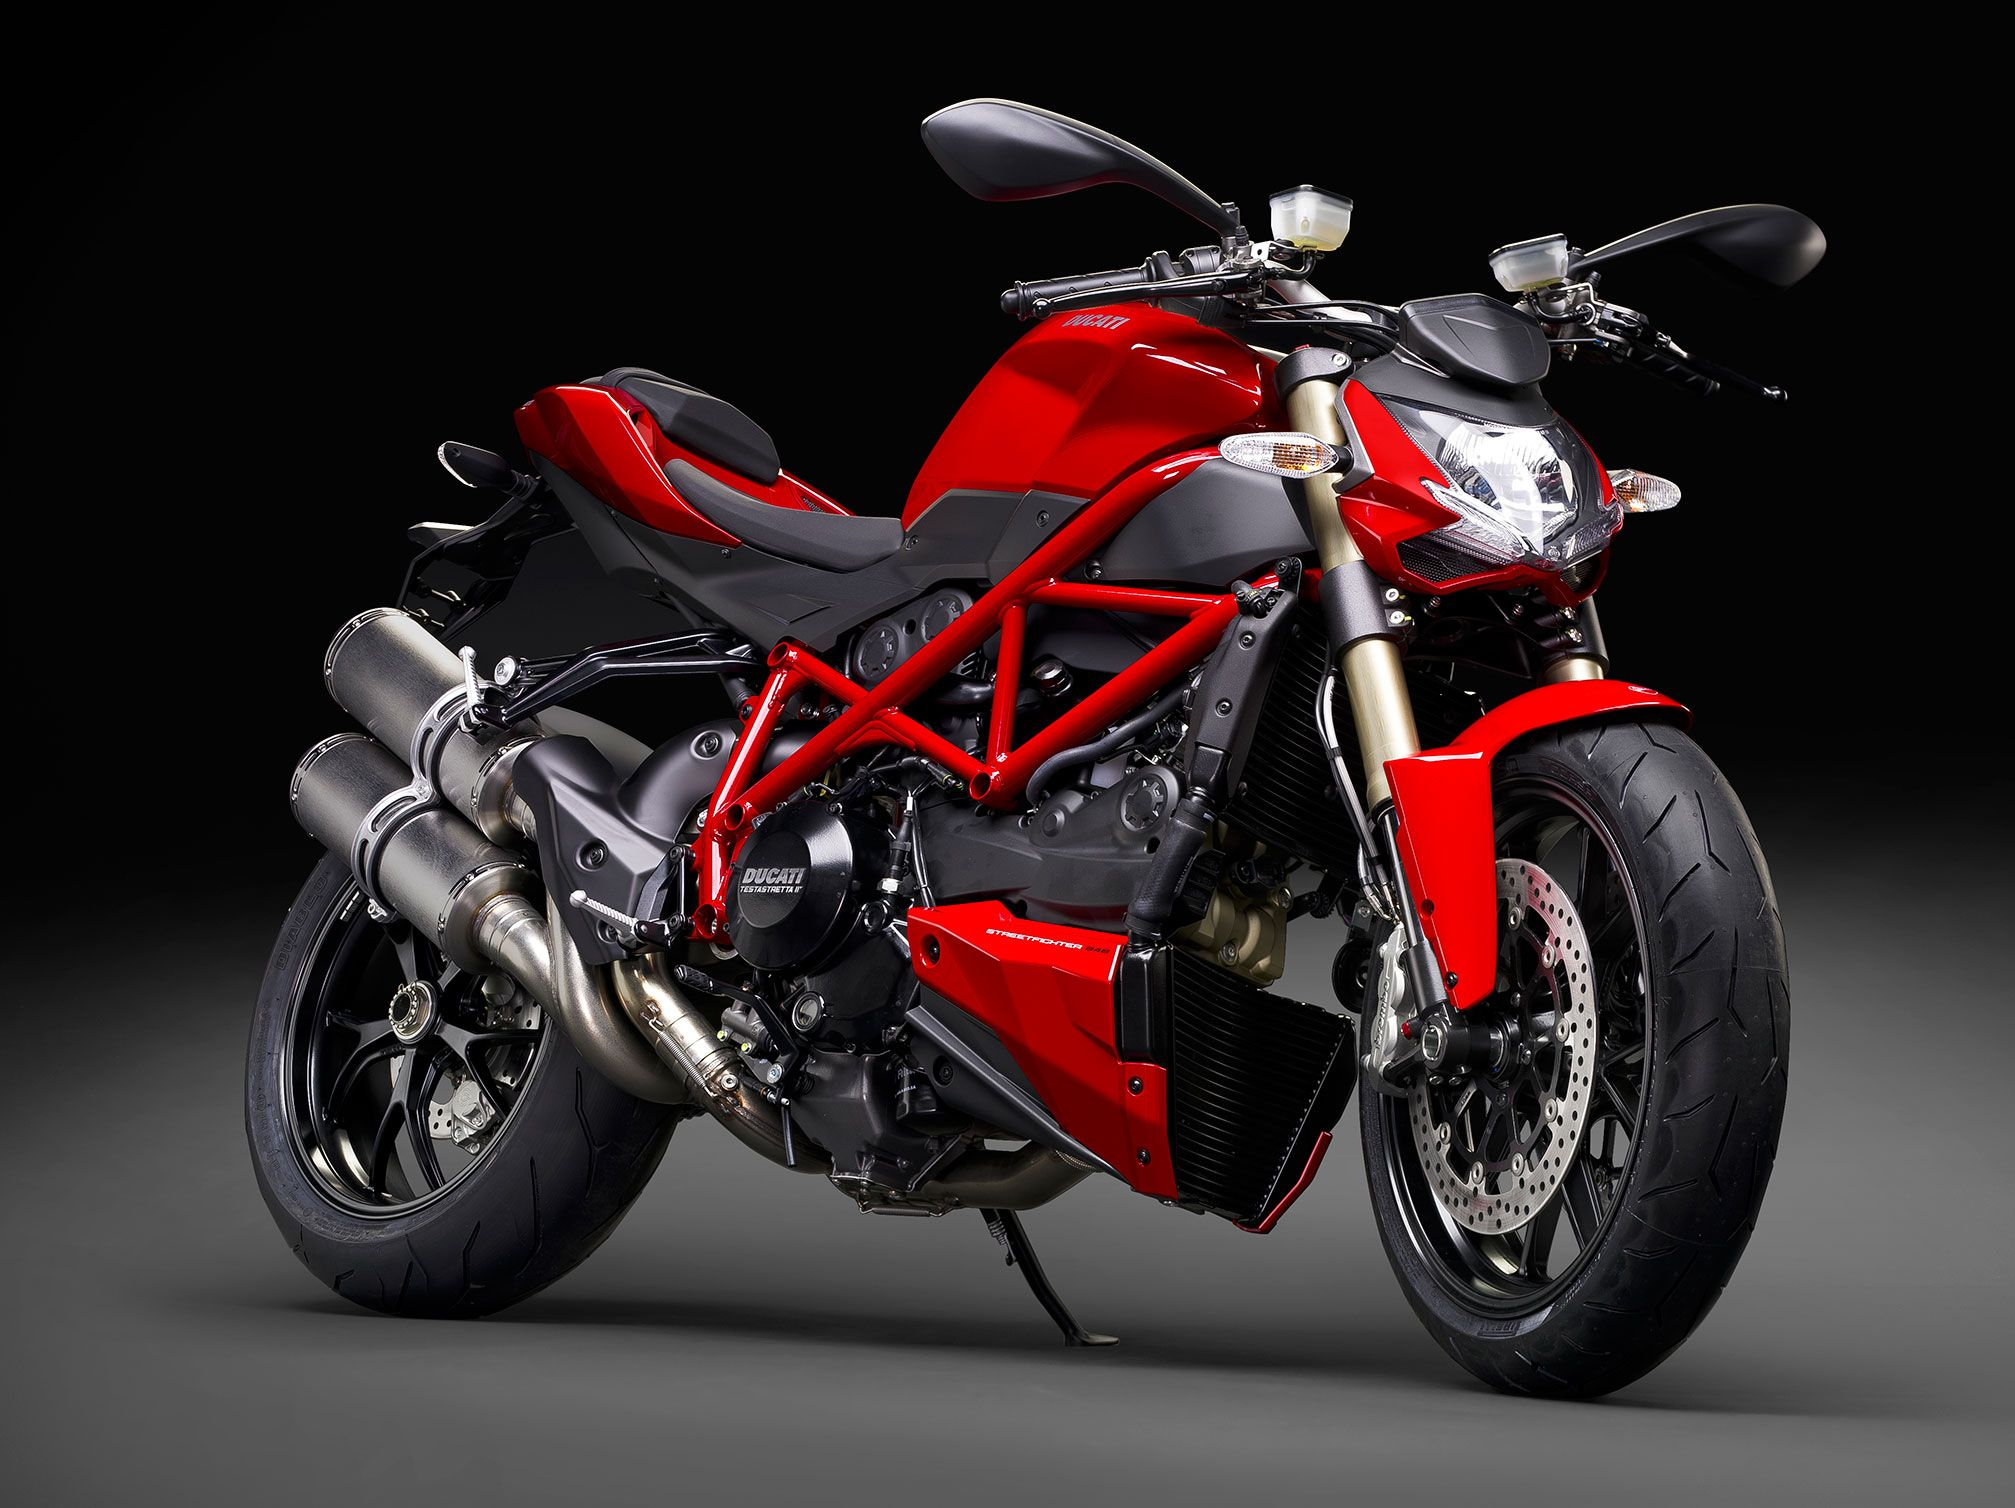 Pin by Jeremy Allred on Cars and Bikes | Pinterest | Ducati, Ducati